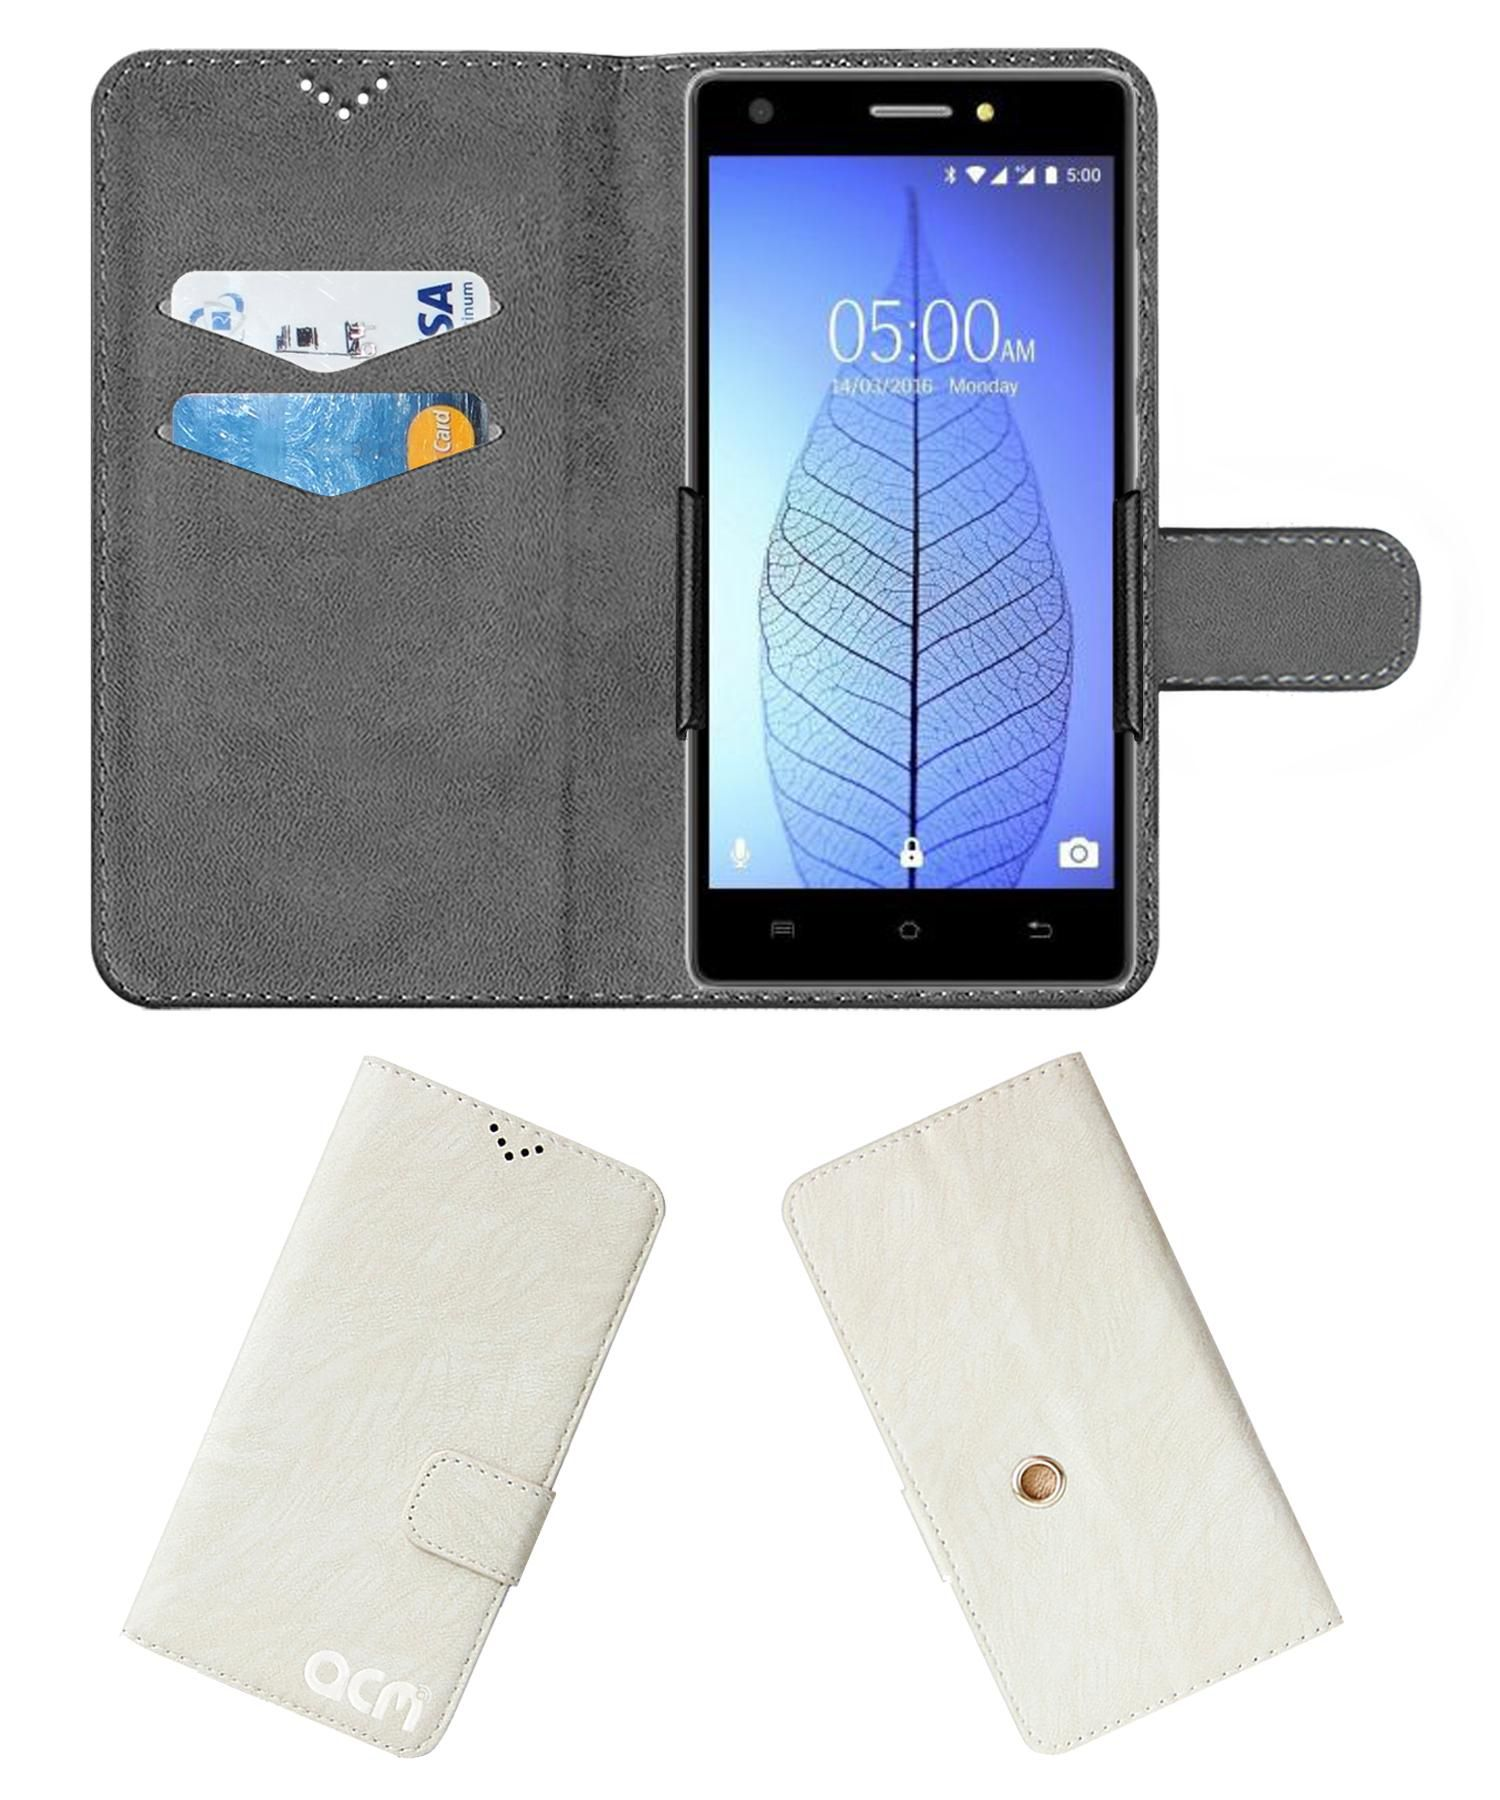 Lava Pixel V2 Plus Flip Cover by ACM - White Clip holder to hold your mobile securely